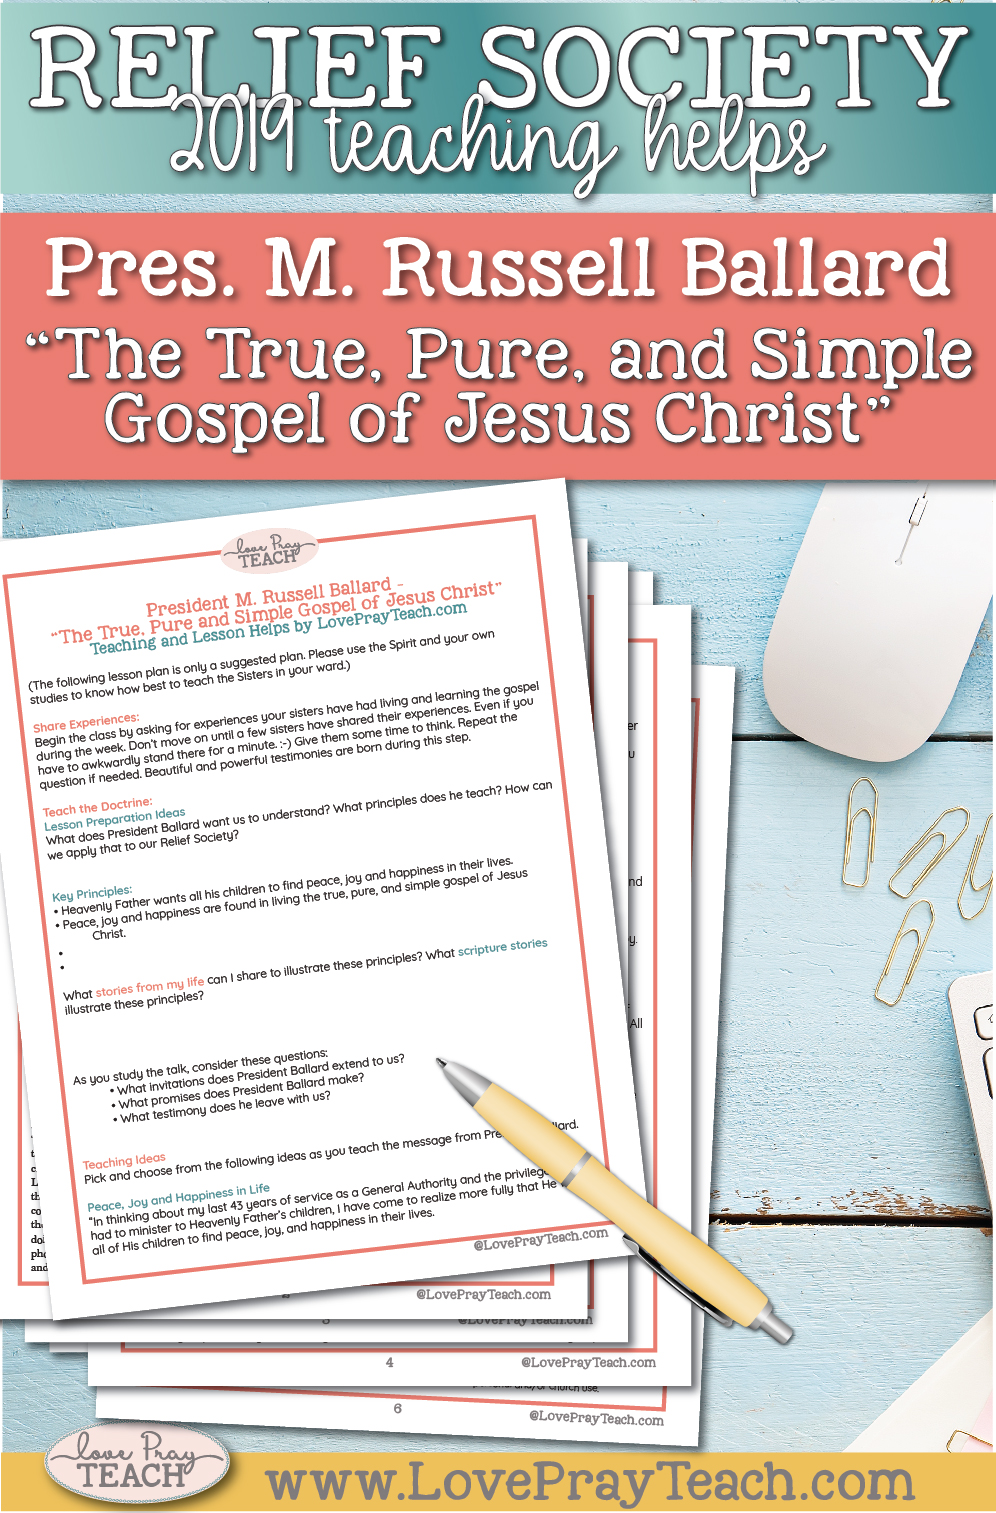 """President M. Russell Ballard: """"The True, Pure, and Simple Gospel of Jesus Christ"""" April 2019 General Conference Lesson Helps"""